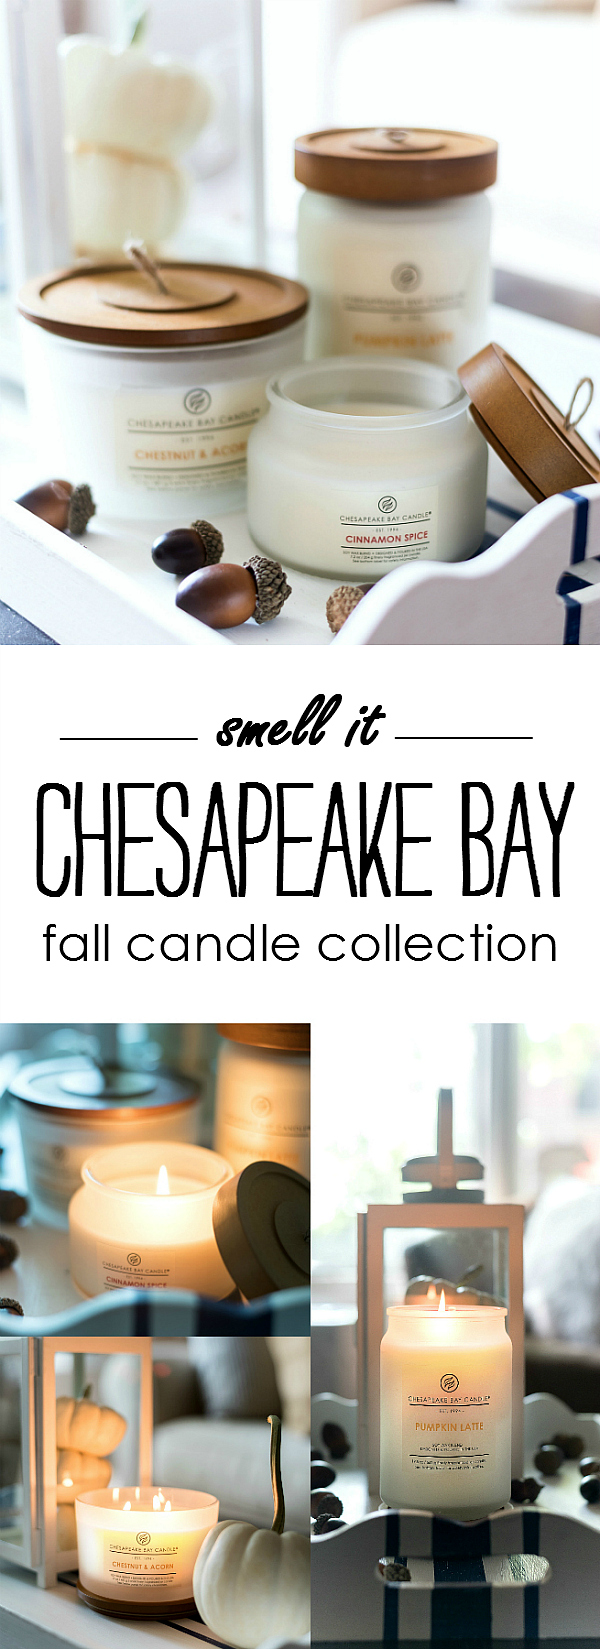 Fall Candle Collection from Chesapeake Bay Candle Heritage Collection - Pumpkin Candle, Cinnamon Candle, Vanilla Candle, Chestnut Candle, Christmas Candle